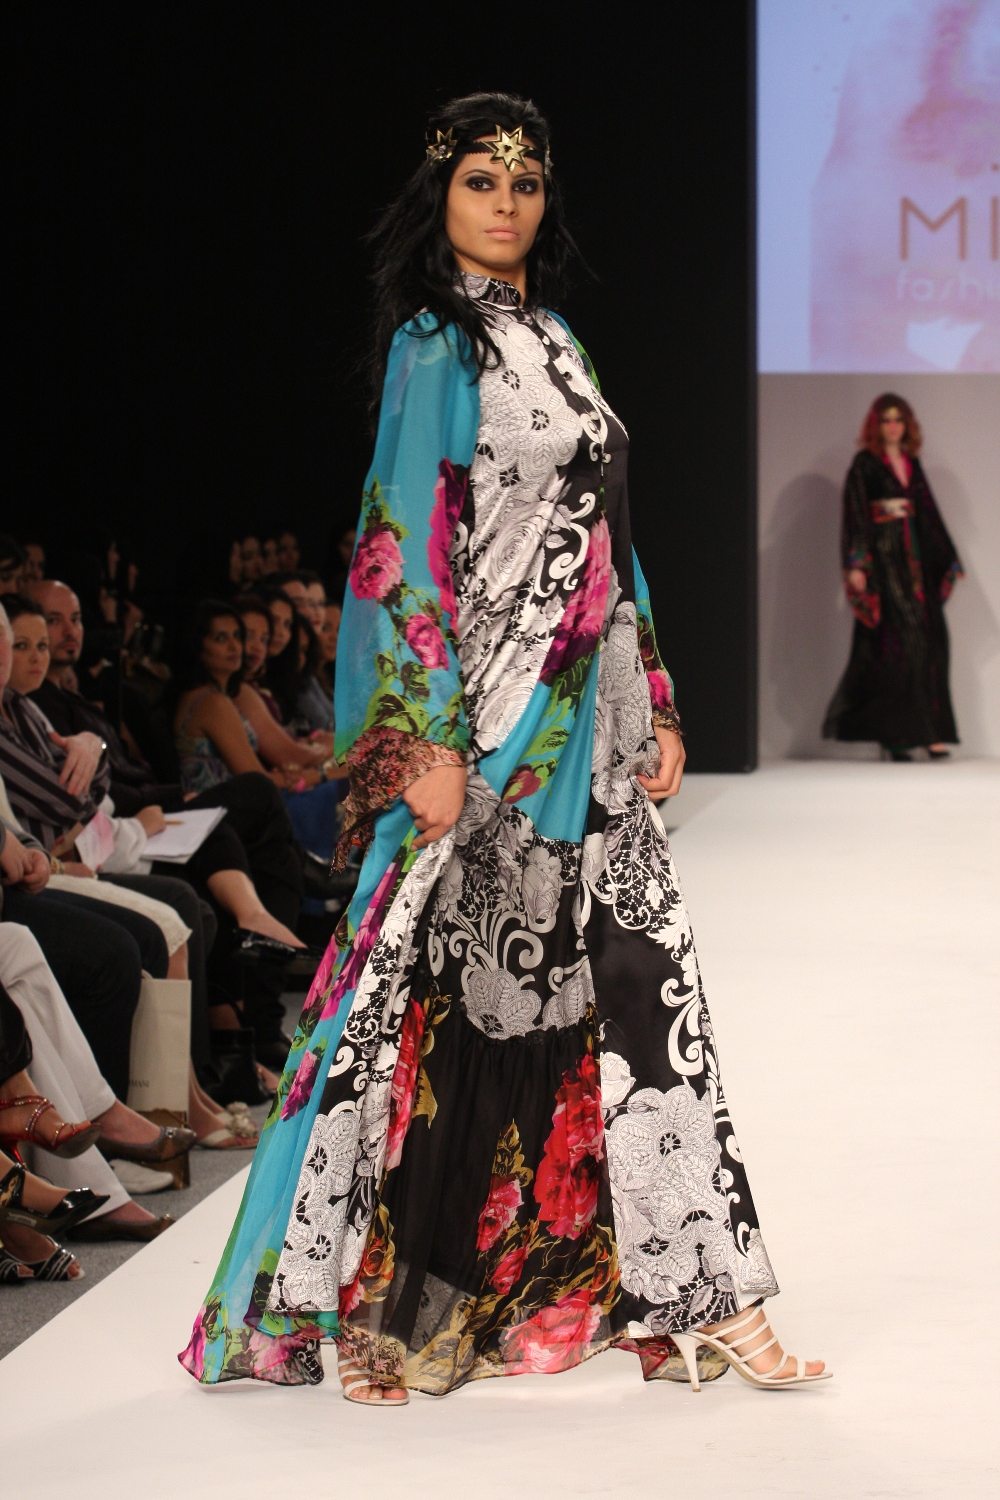 Mariam Al Mazro shifted the focus of Dubai Fashion Week A/W 09 to prints. Flamboyancy mixed with a carefree attitude was represented in her collection of panelled ankle-length dresses.